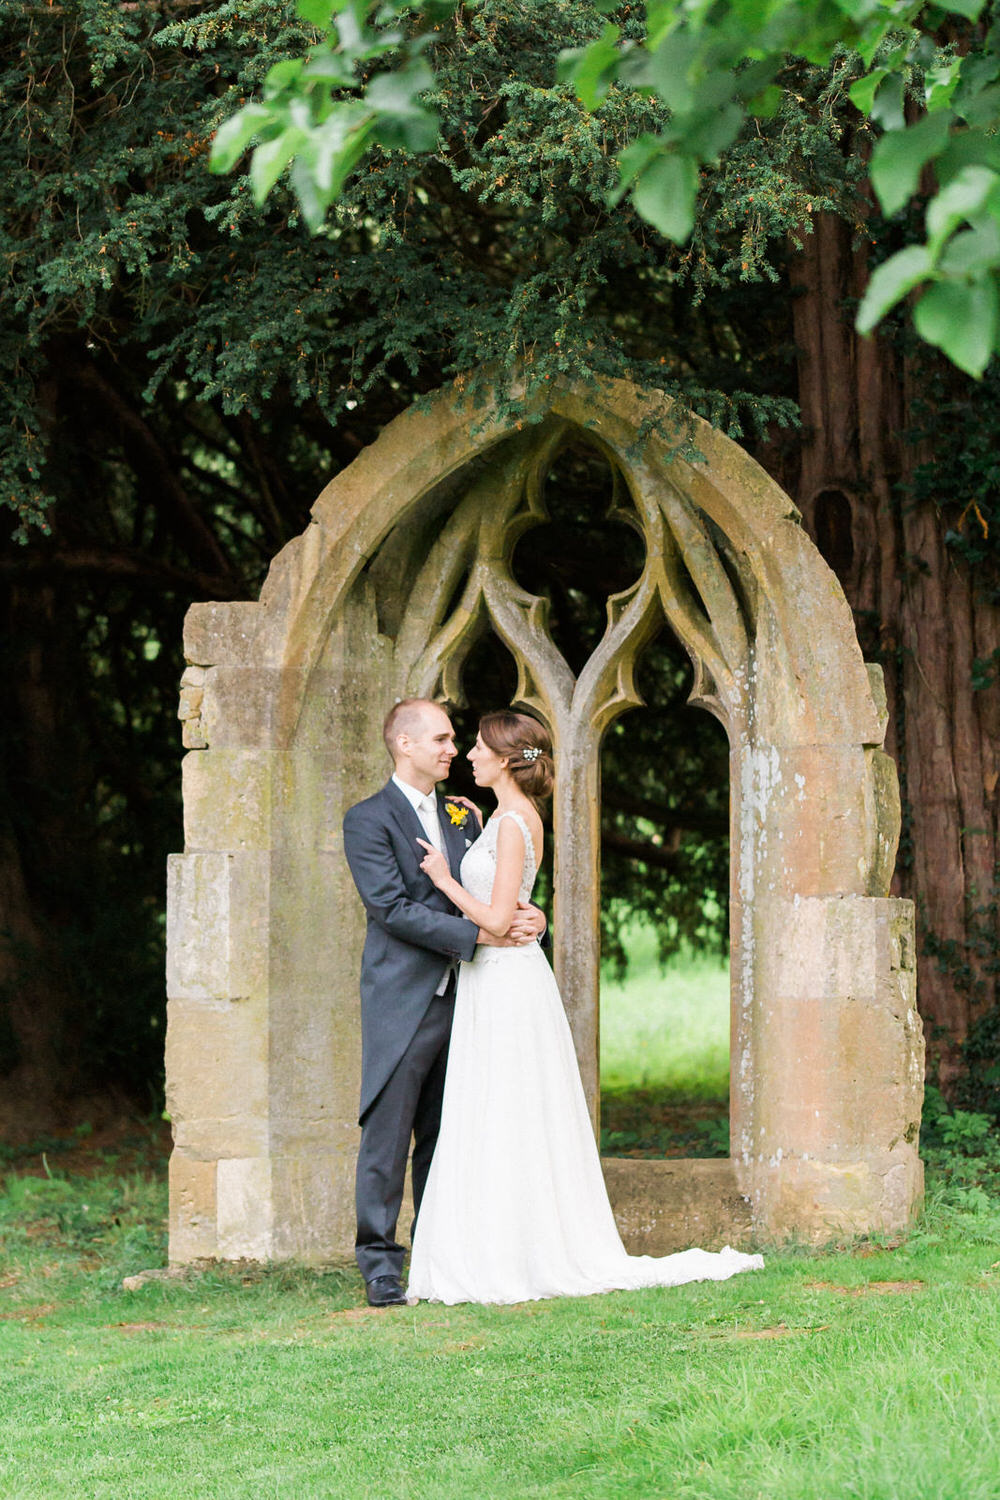 Special-Day-Photography-Dumbleton-Hall-hotel-Evensham-The-historic-window-frame-at-Dubleton-Hall-Hotel-Summer-wedding-in-Dumbleton.jpg